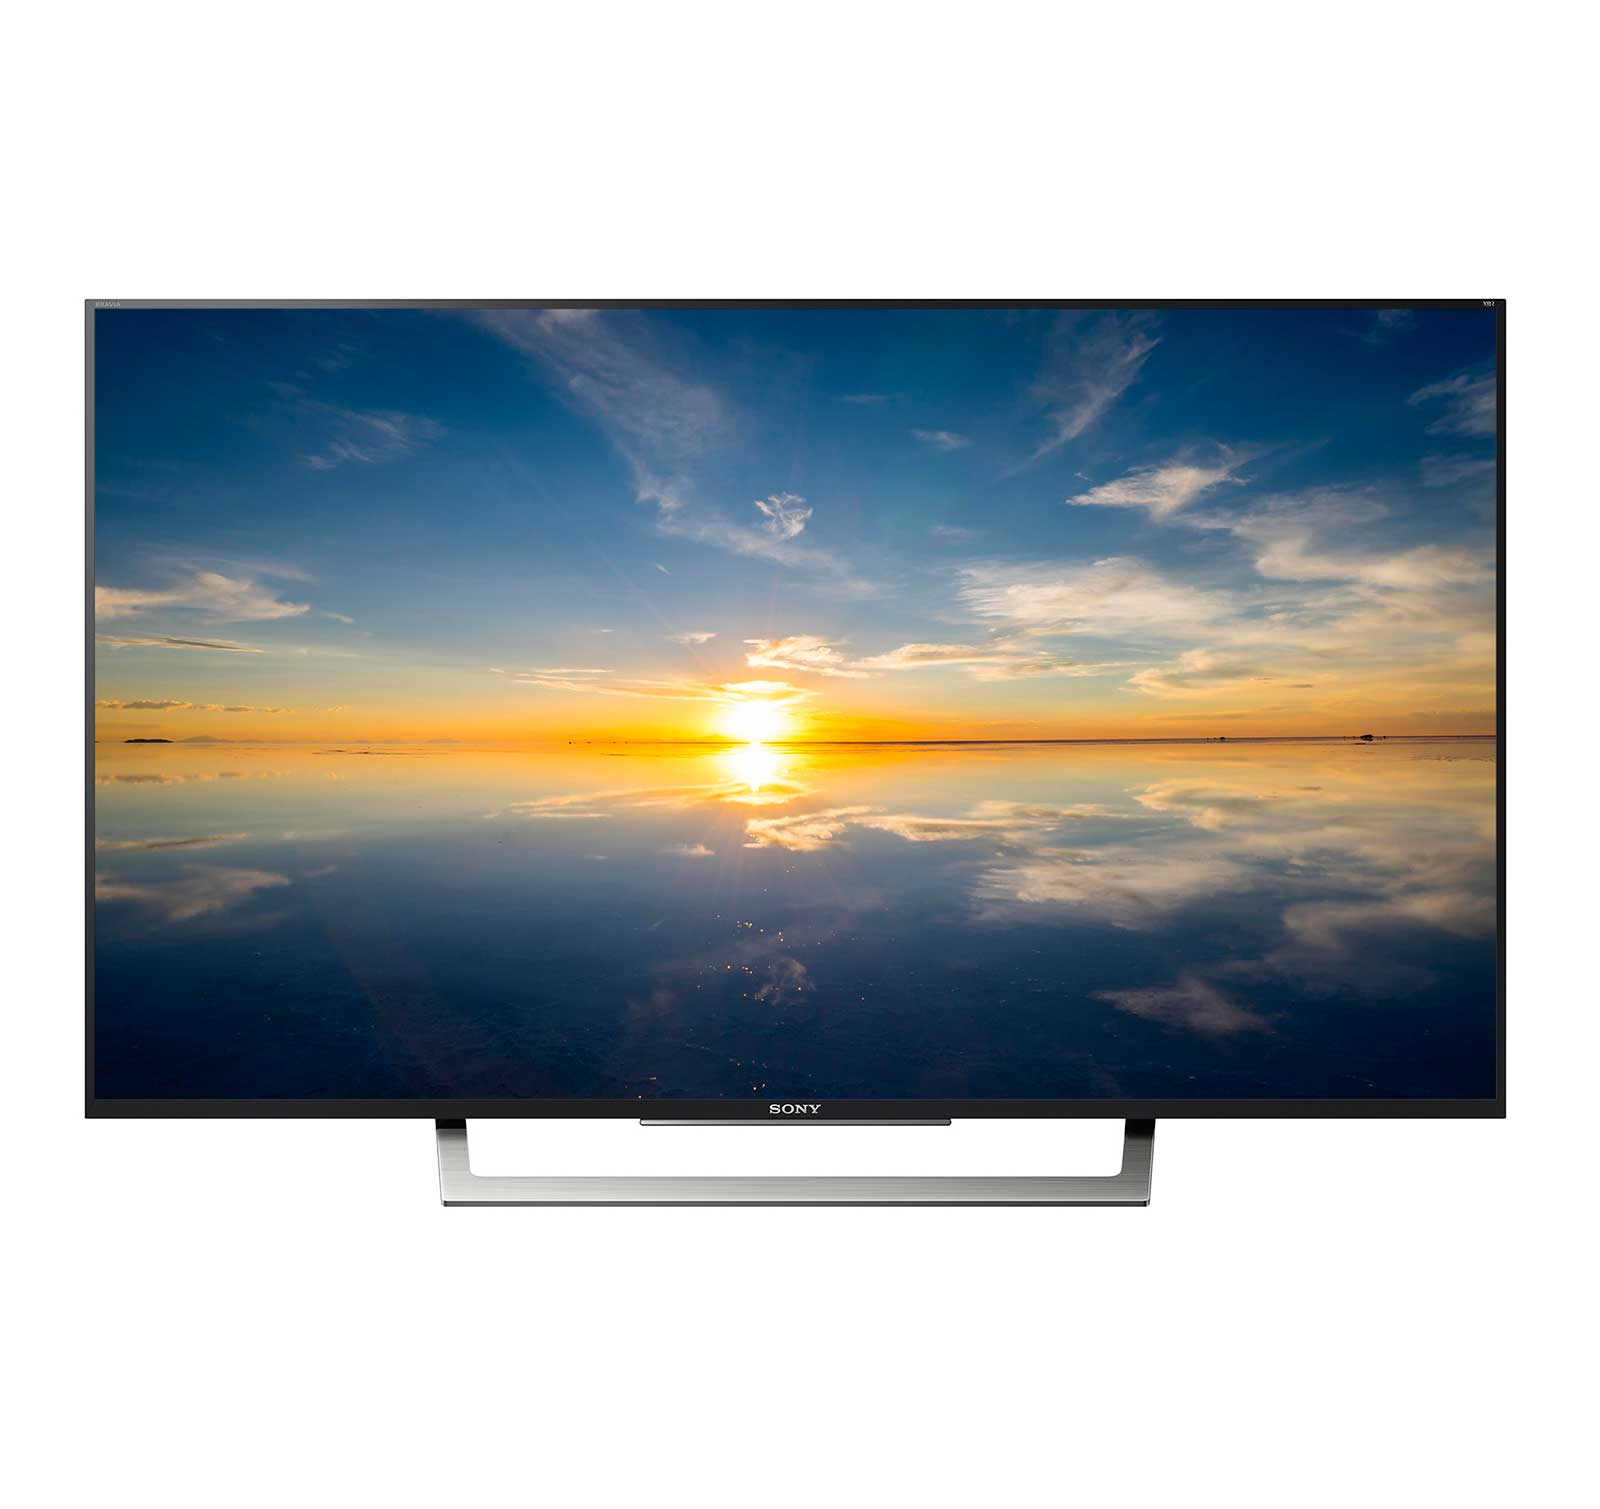 "Sony XBR43X800D 43"" 4K Ultra HD 2160p 60Hz LED Smart HDTV (4K x 2K)"